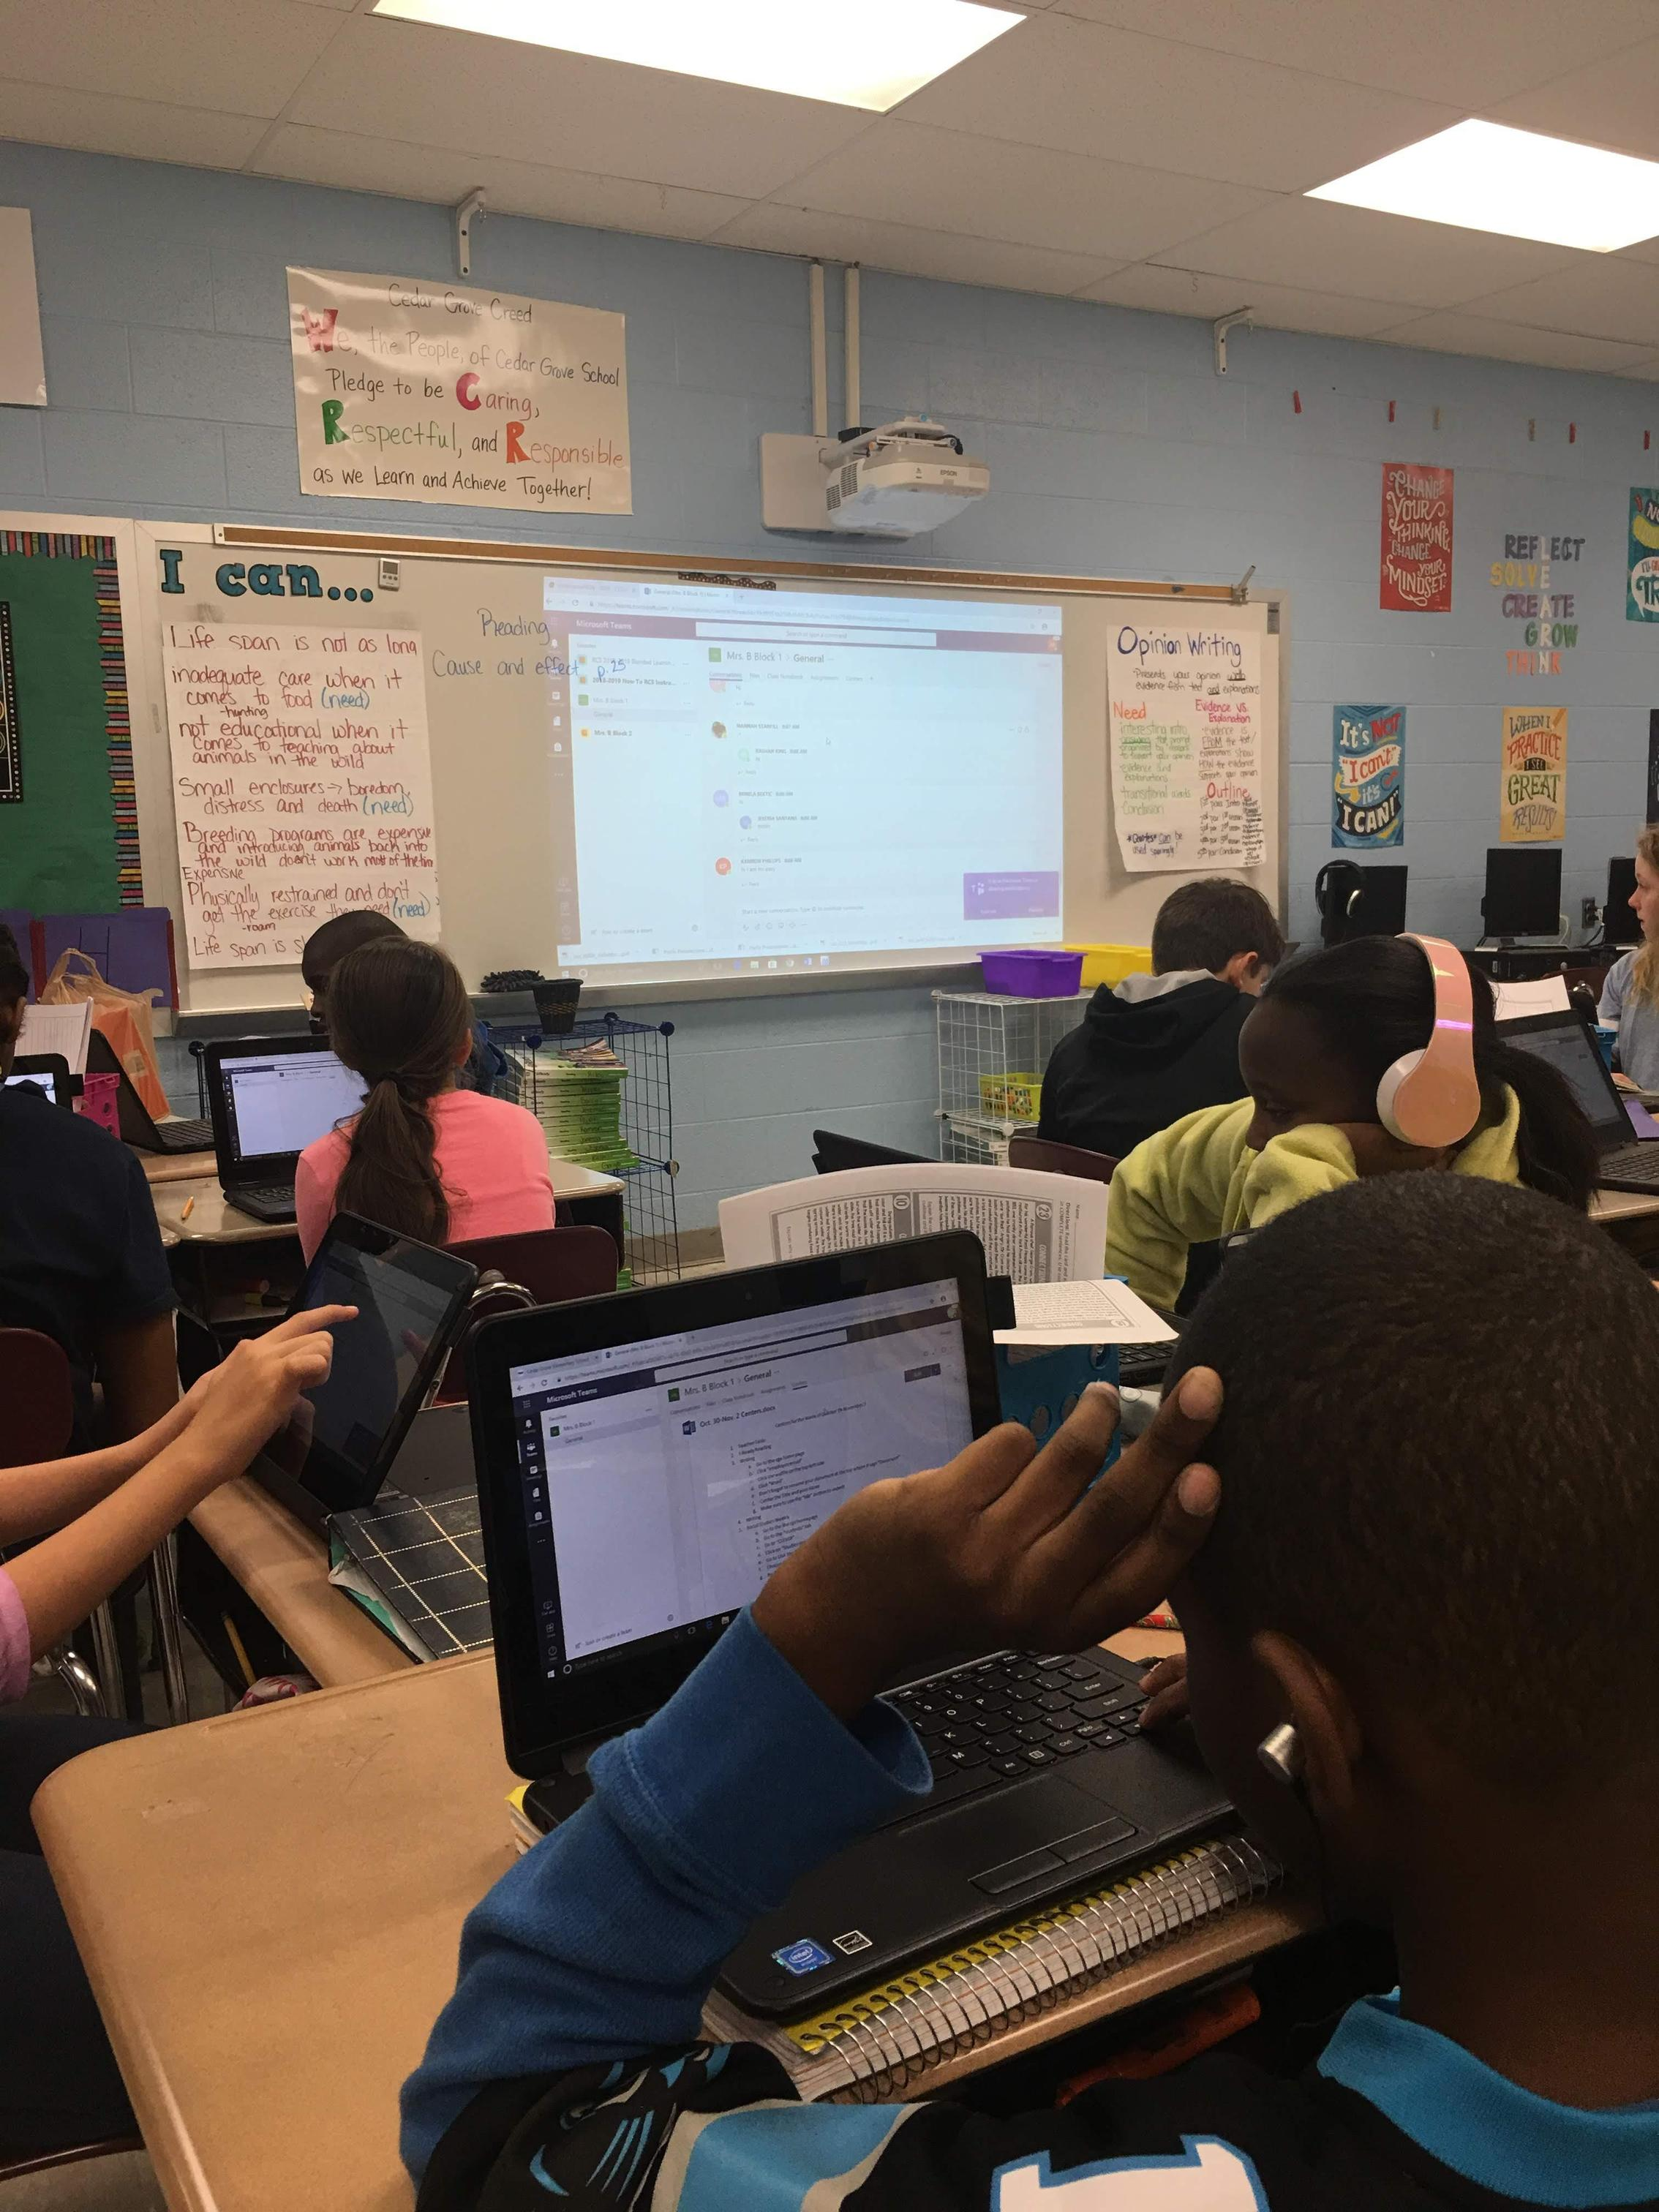 TEAMS in 5th grade Blended Learning Classroom